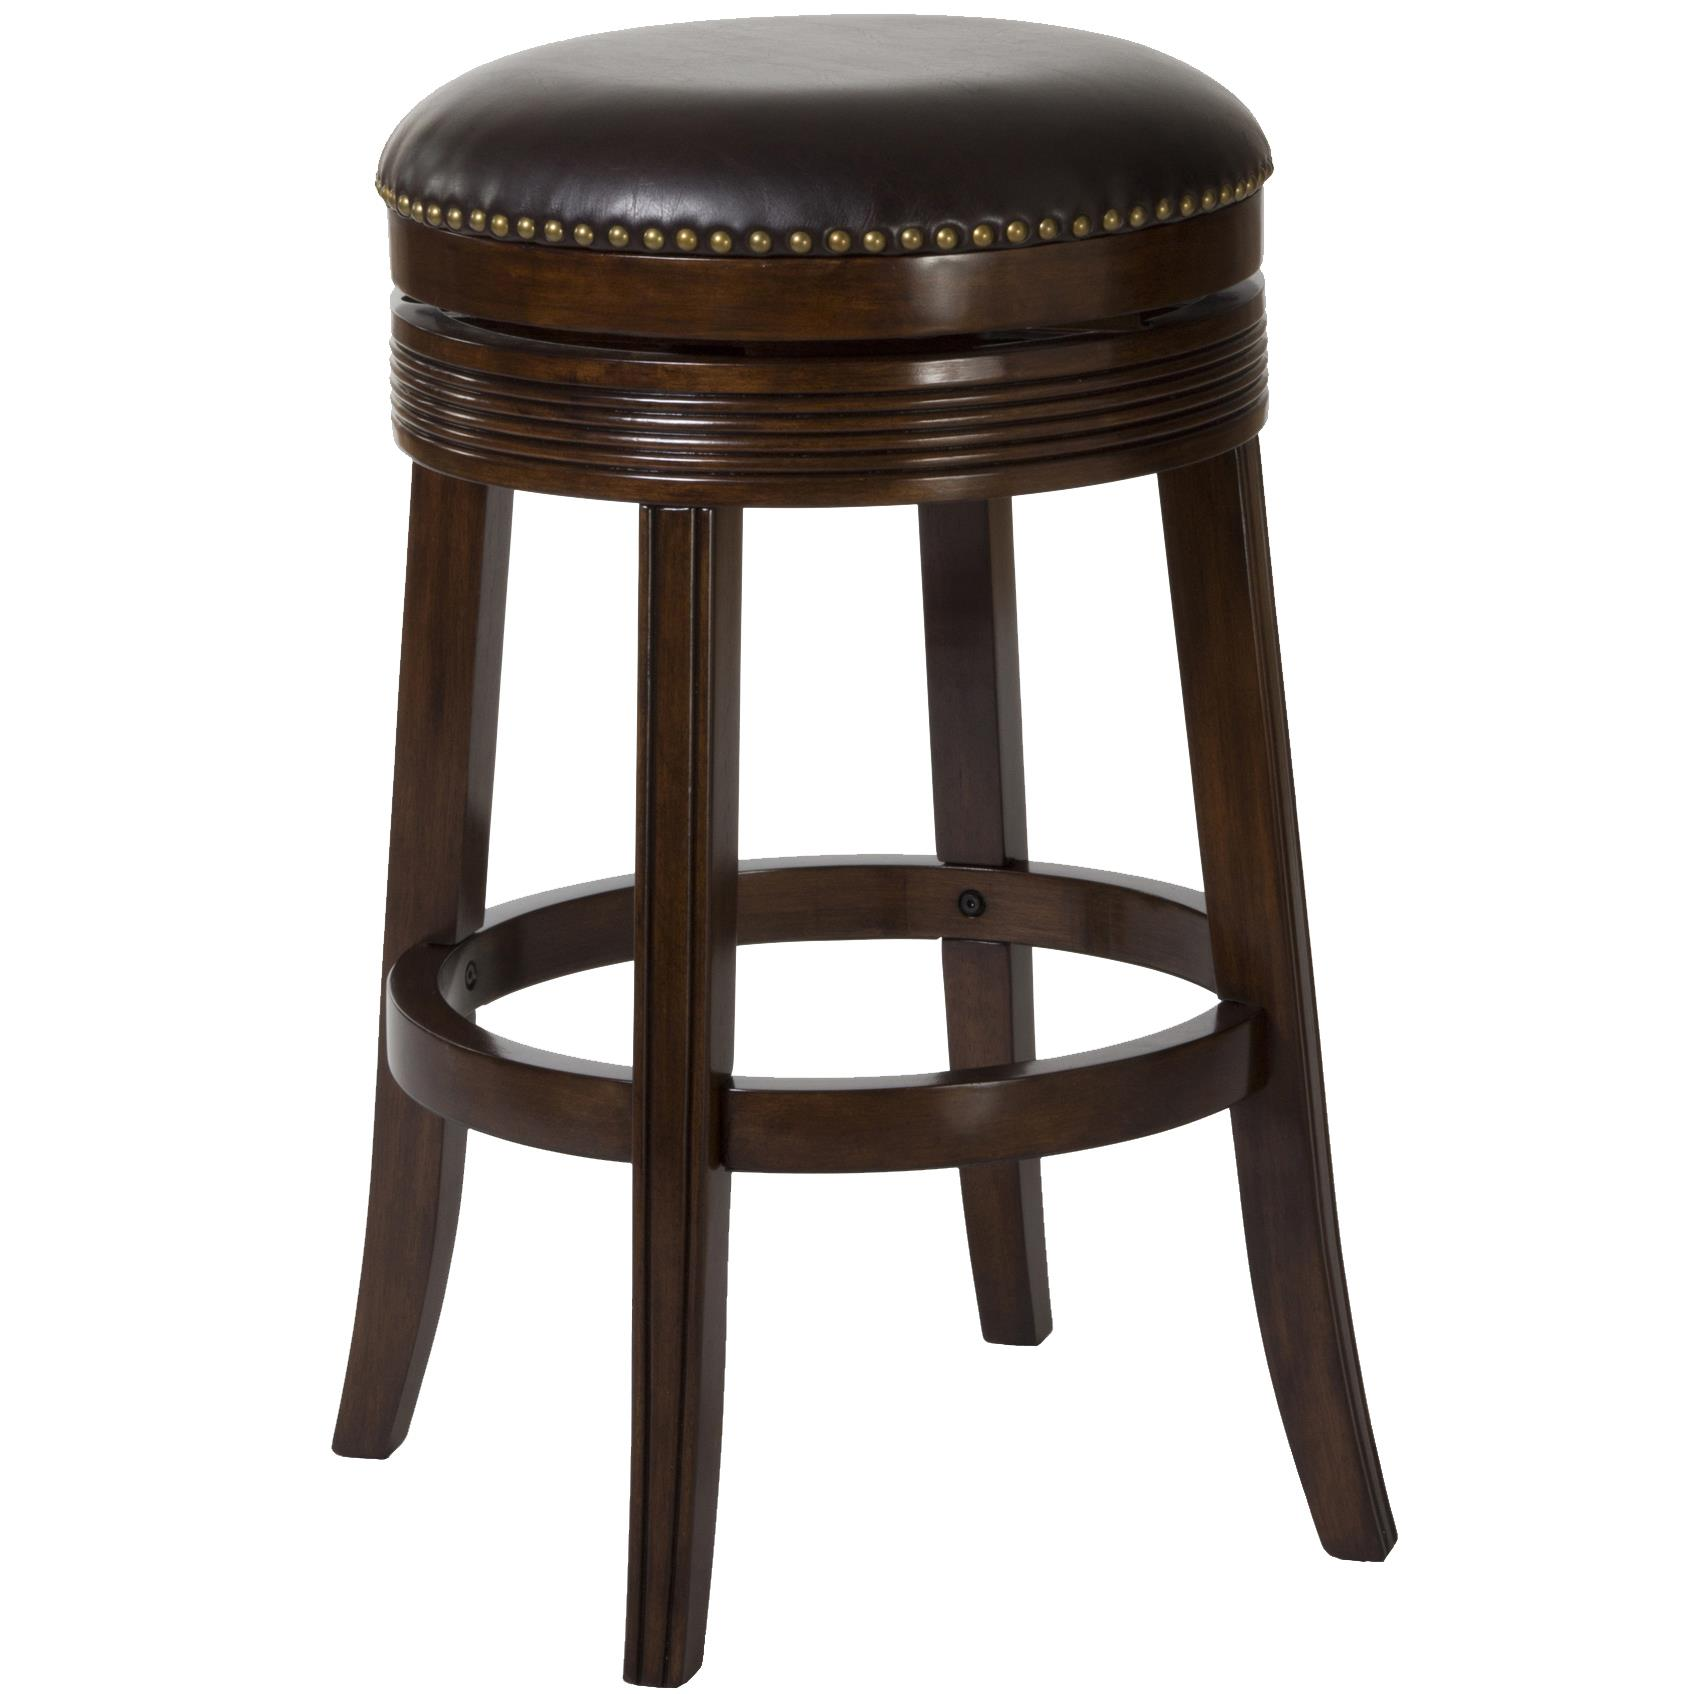 Hillsdale backless bar stools 5220 830a 30 tillman for Backless bar stools